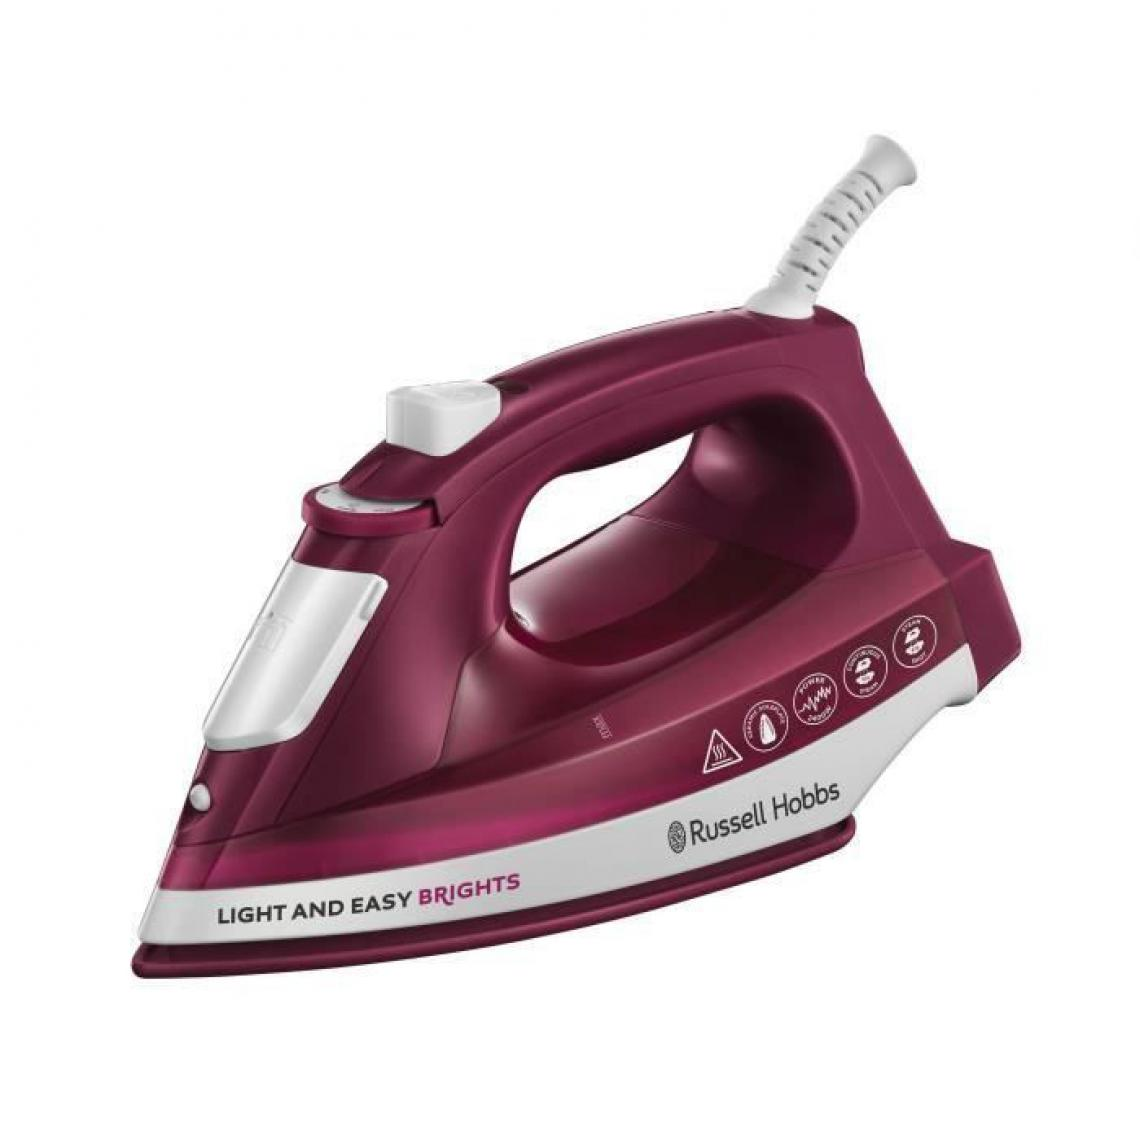 Russell Hobbs Russell Hobbs Fer à repasser Light and Easy Brights Mulberry 2400 W